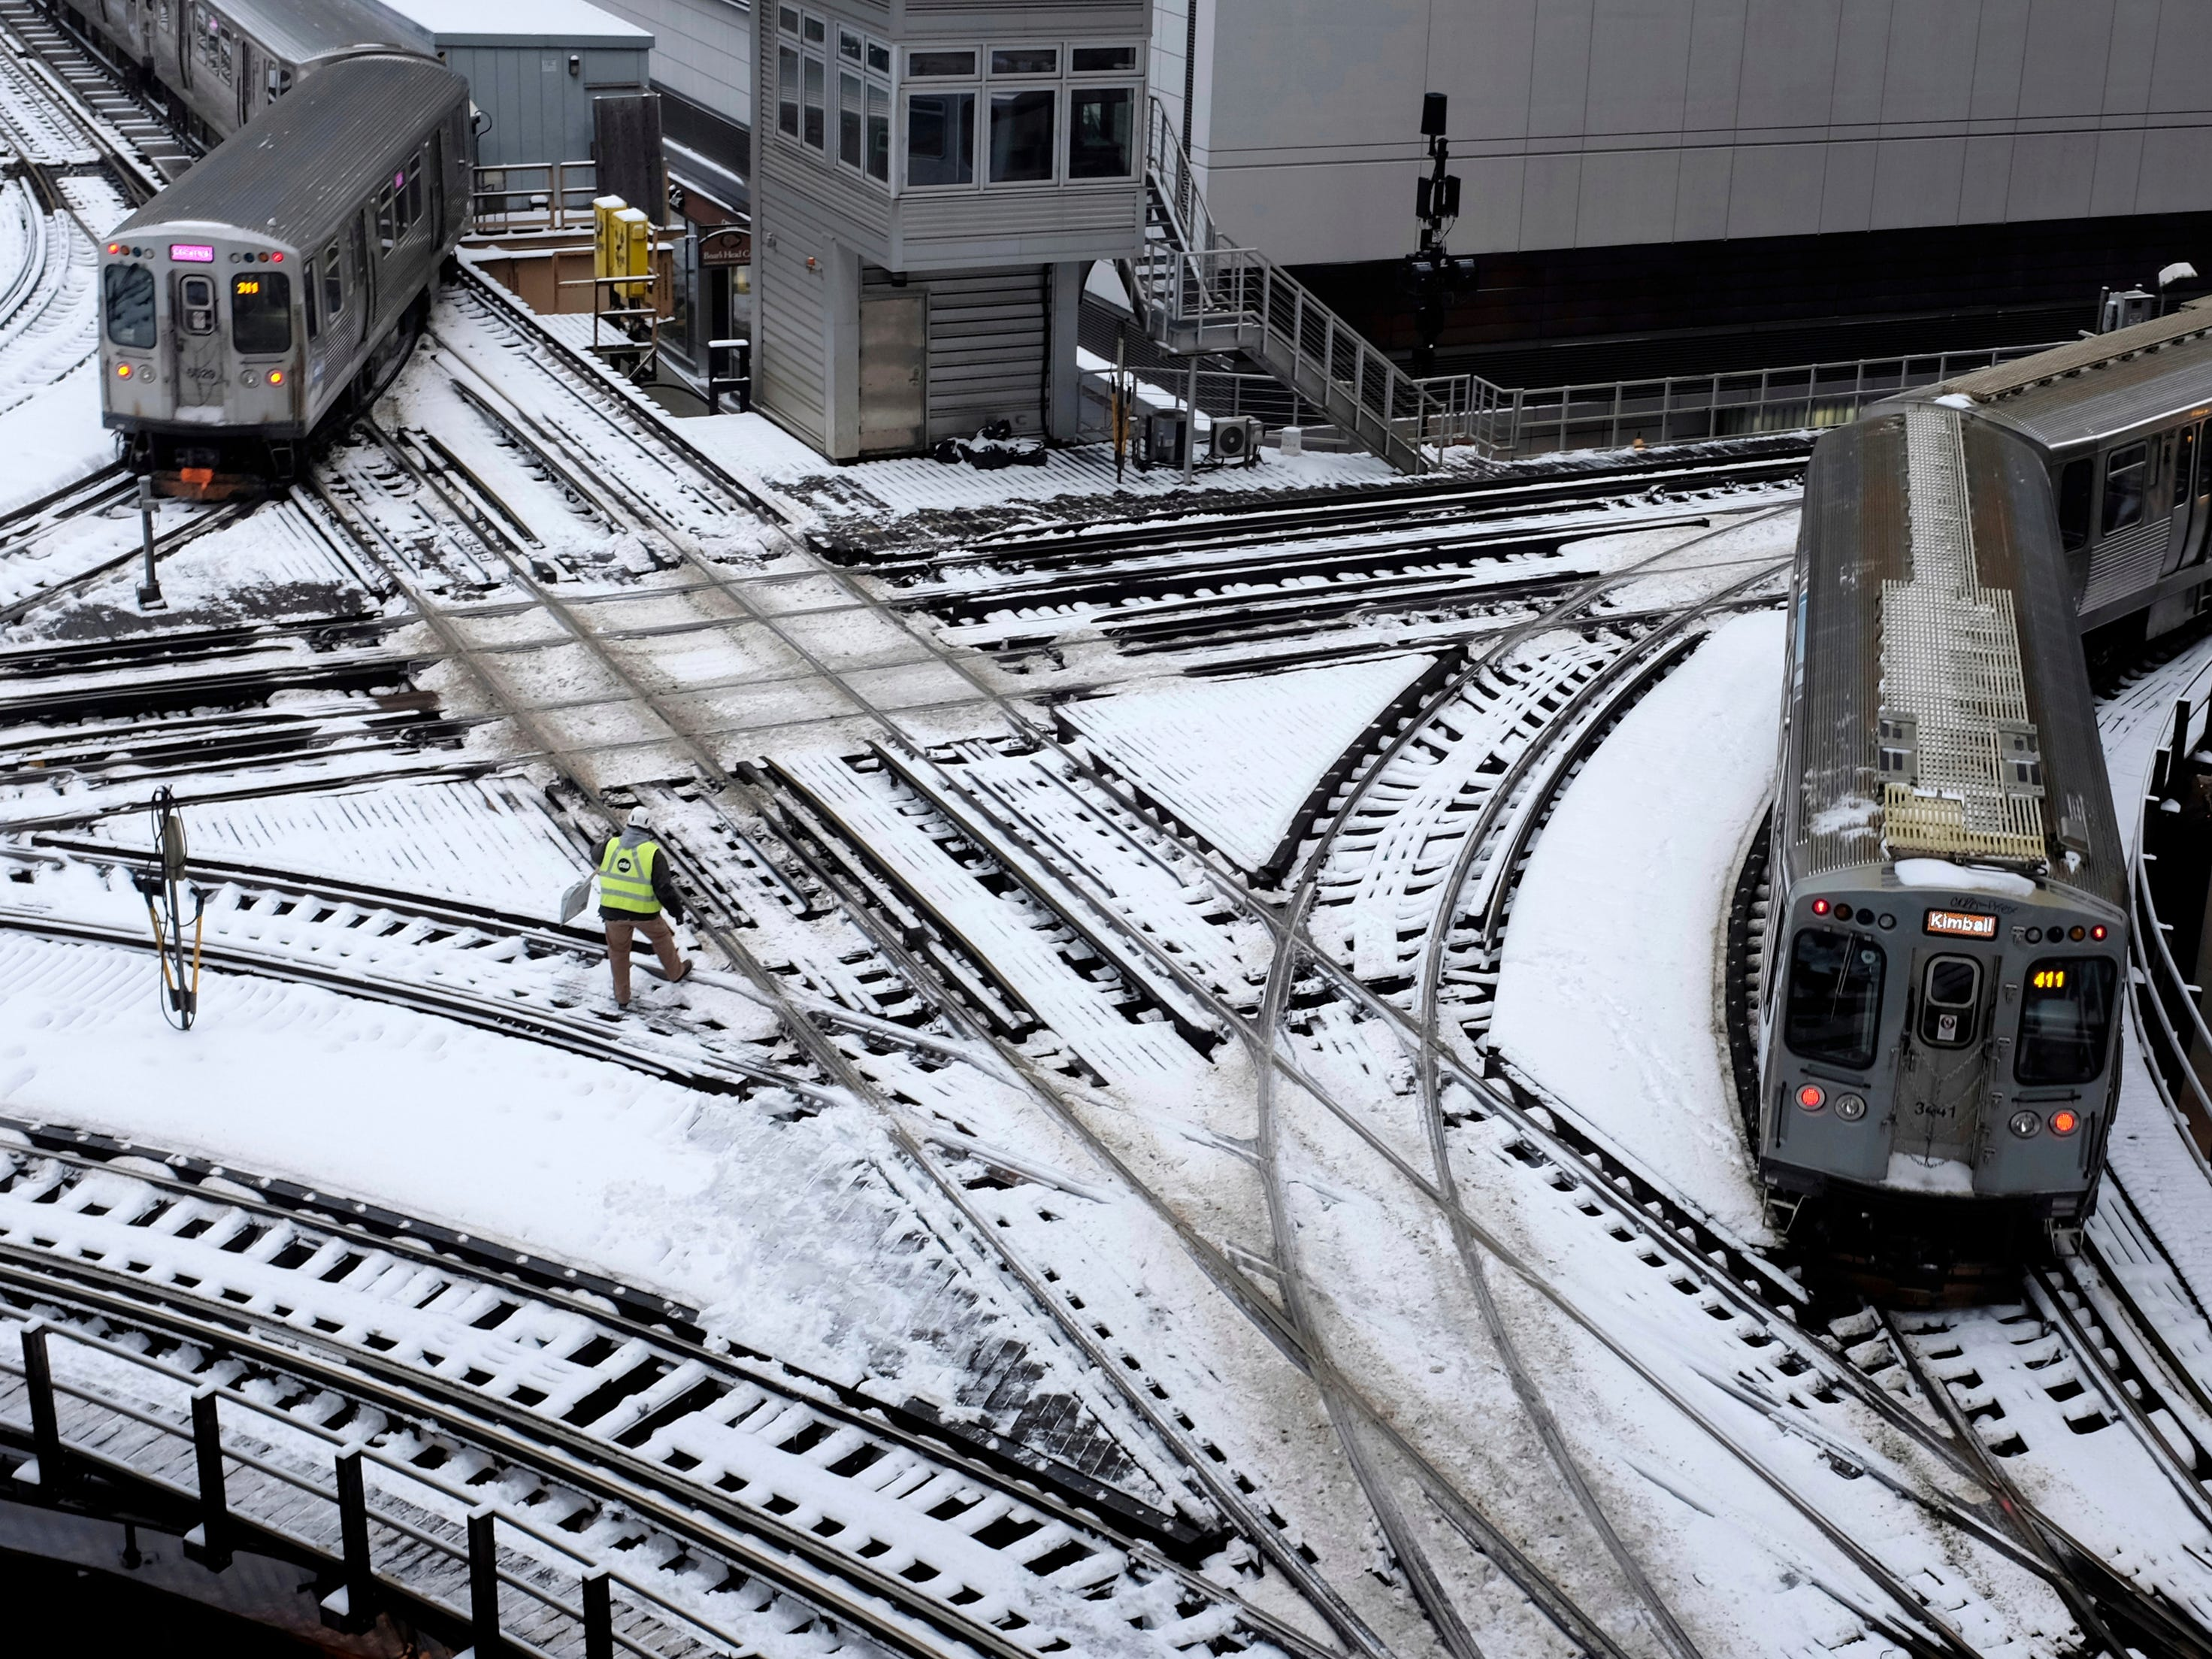 """Chicago's elevated trains move along snow-covered tracks Monday, Jan. 28, 2019, in Chicago. The plunging temperatures expected later this week have forecasters especially concerned. Wind chills could dip to negative 55 degrees in northern Illinois, which the National Weather Service calls """"possibly life threatening."""""""